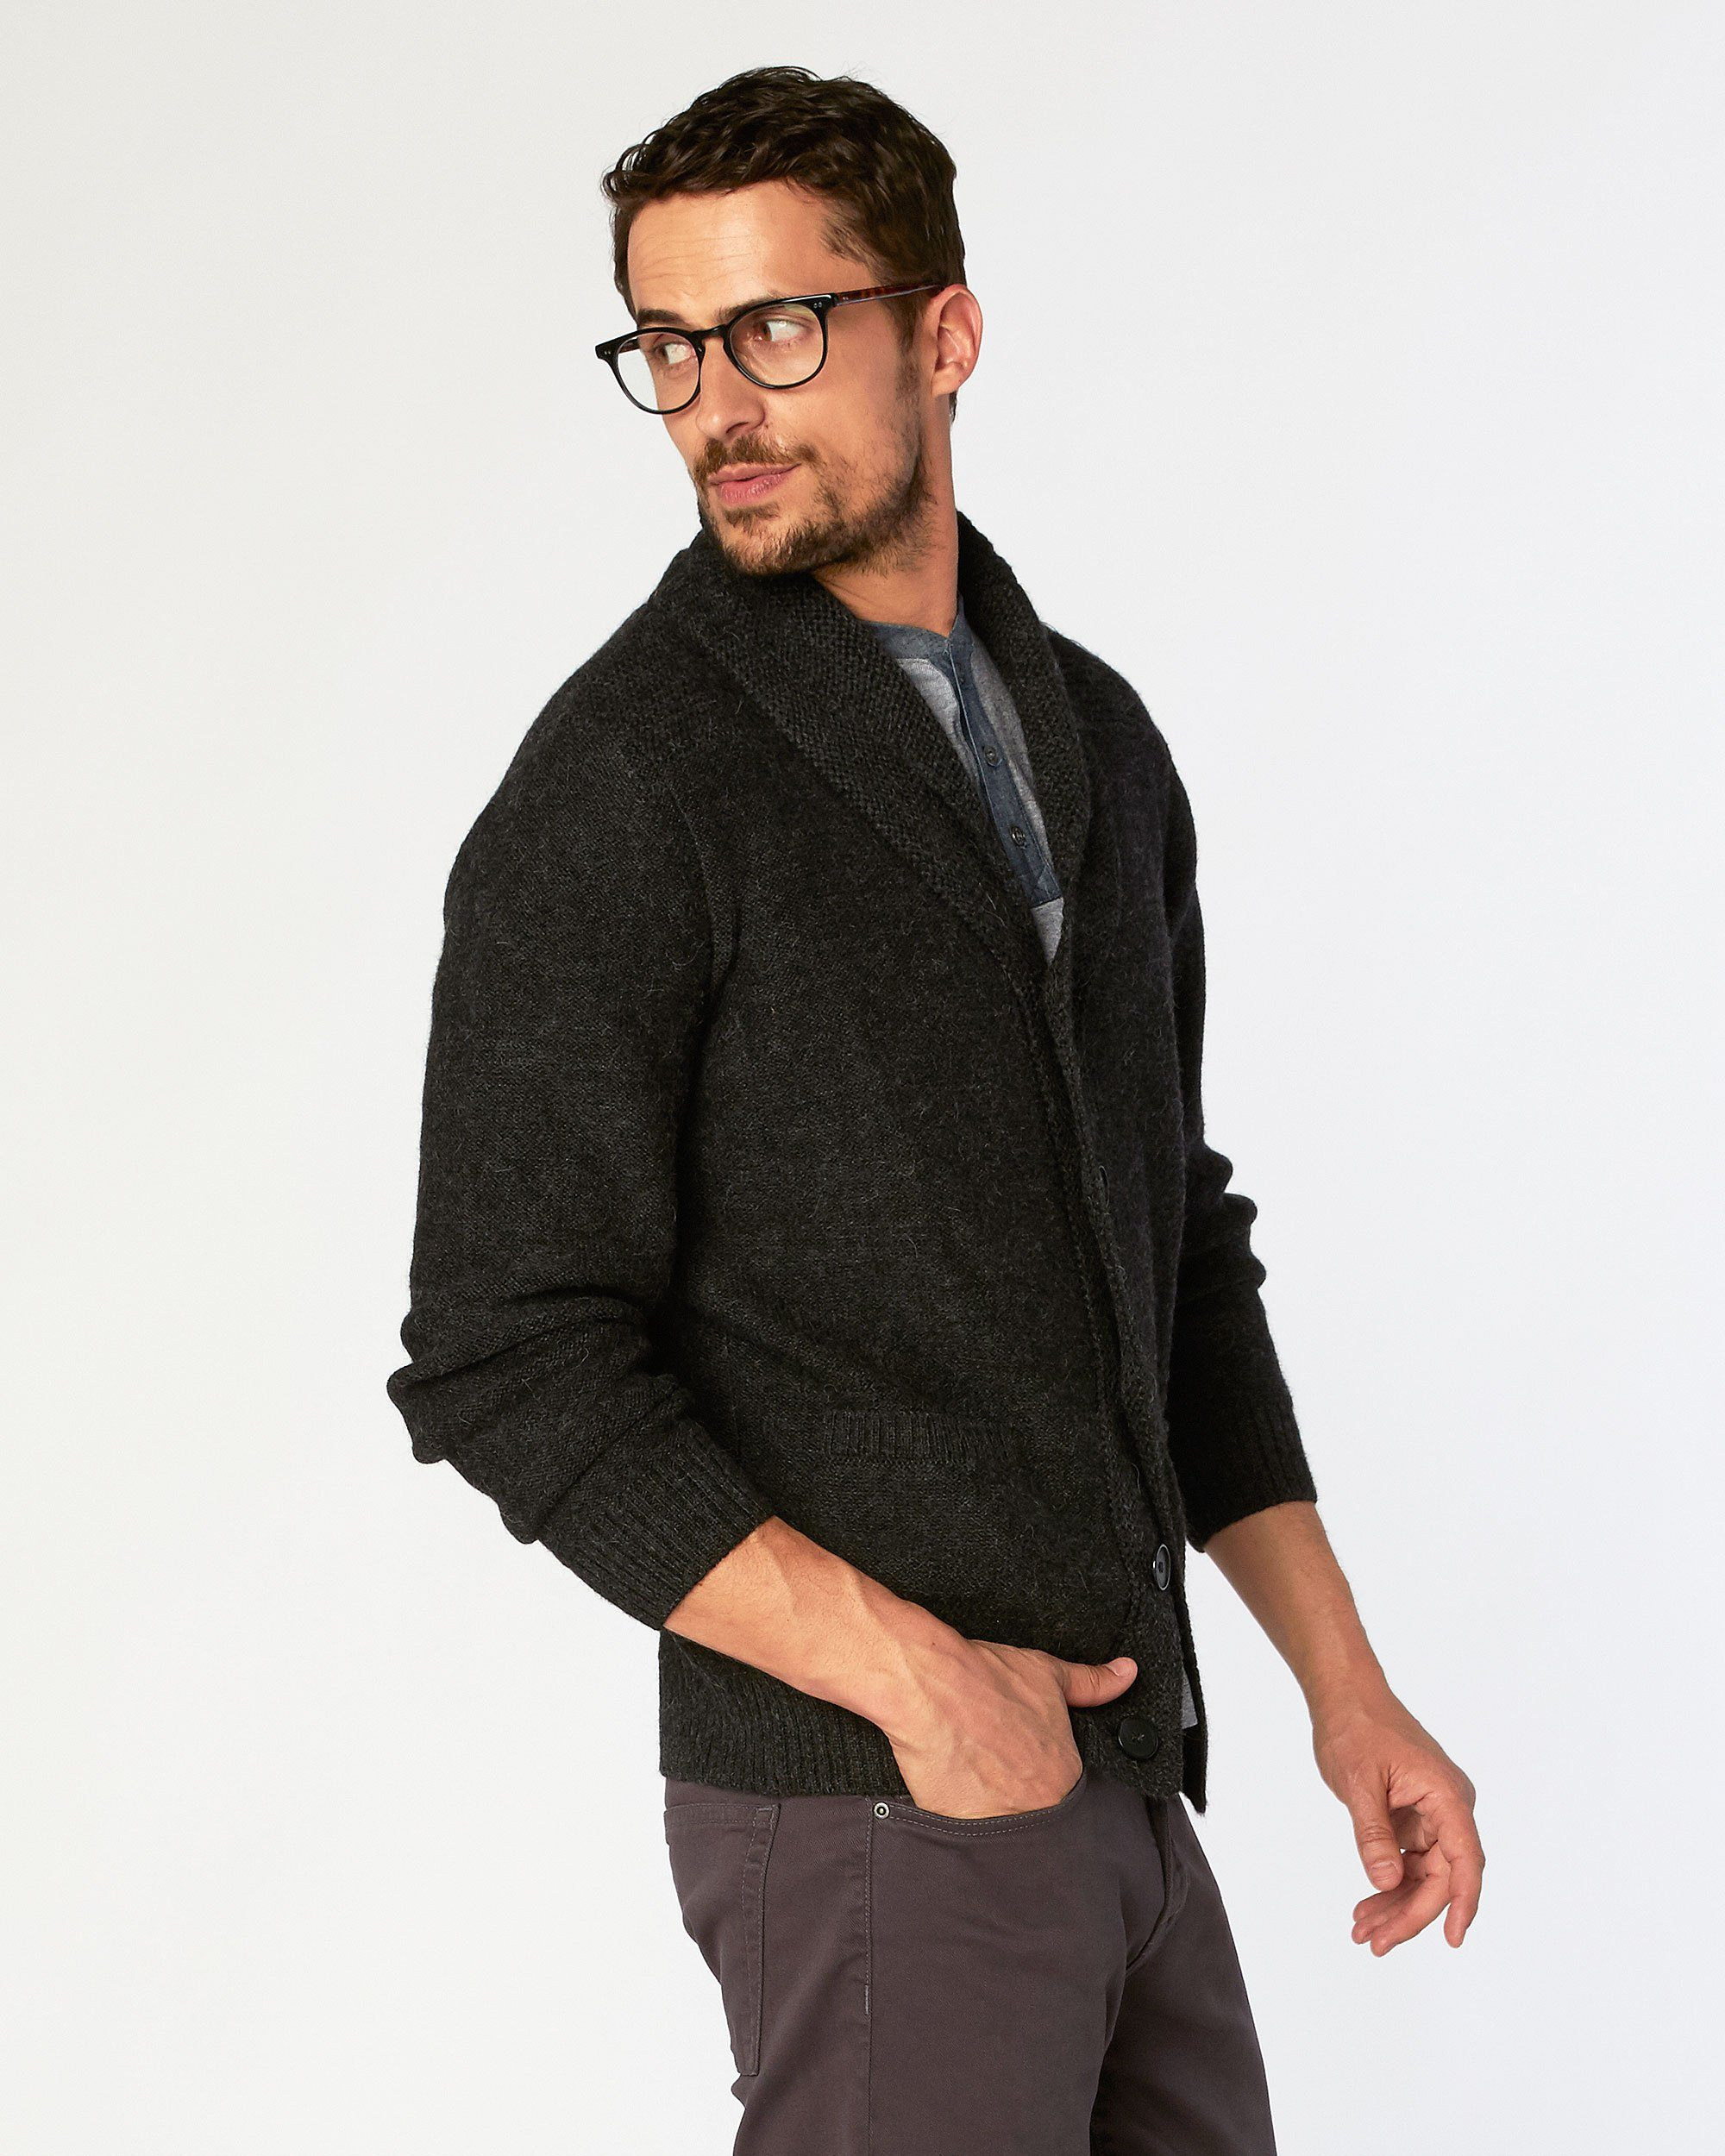 Chicama Long Sleeve Shawl Cardigan